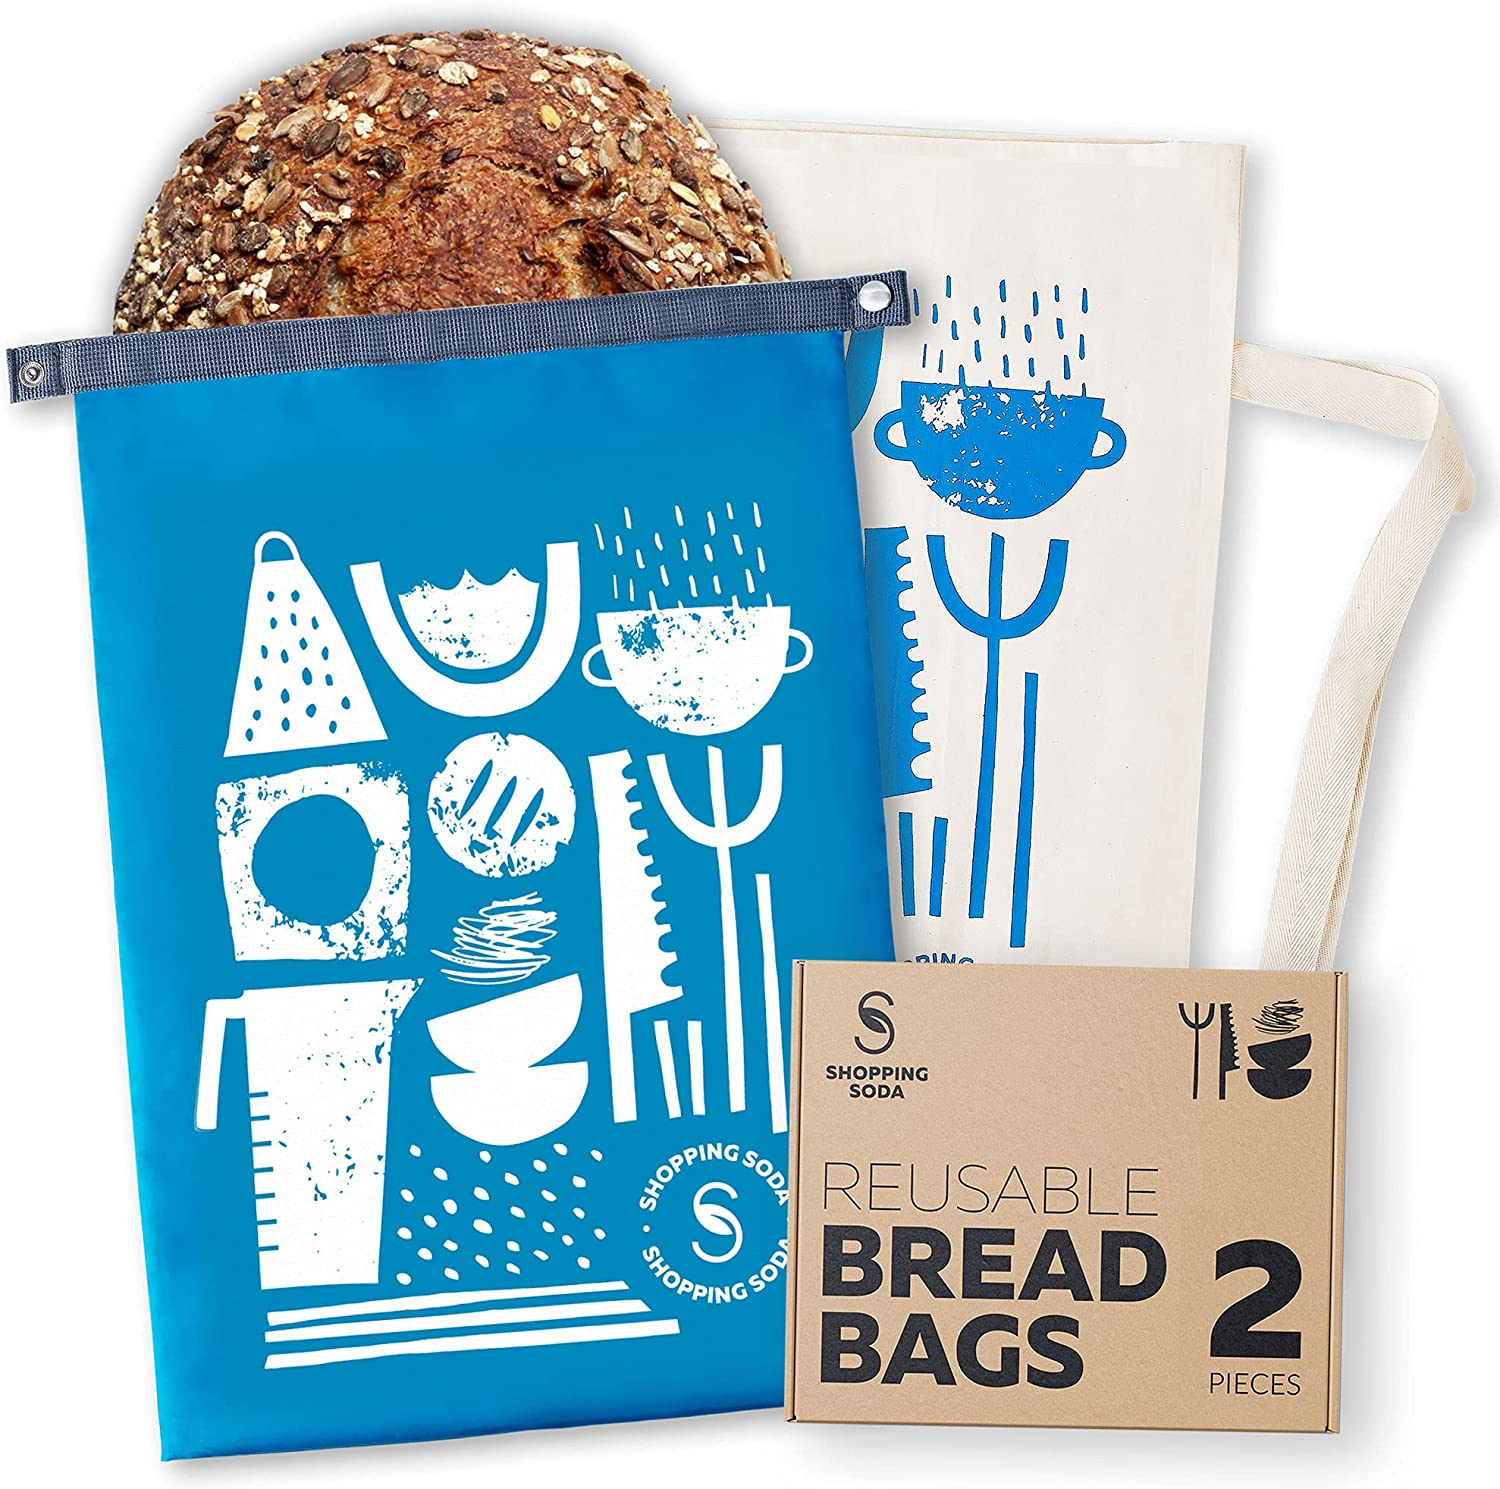 Super beauty product restock quality Large-scale sale top Reusable Bread Bags Zero Waste Storage Containers for - 2